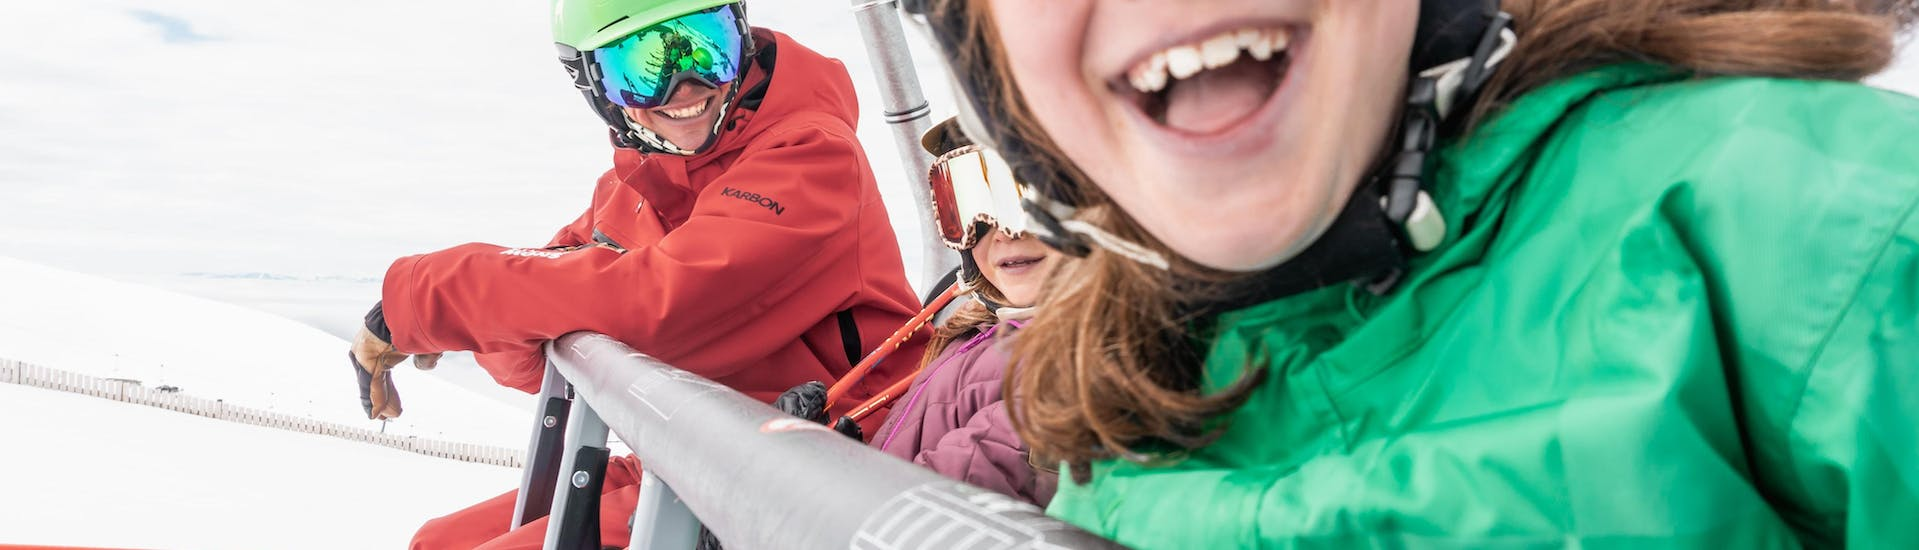 Private Ski Lessons for Kids - With Transfer